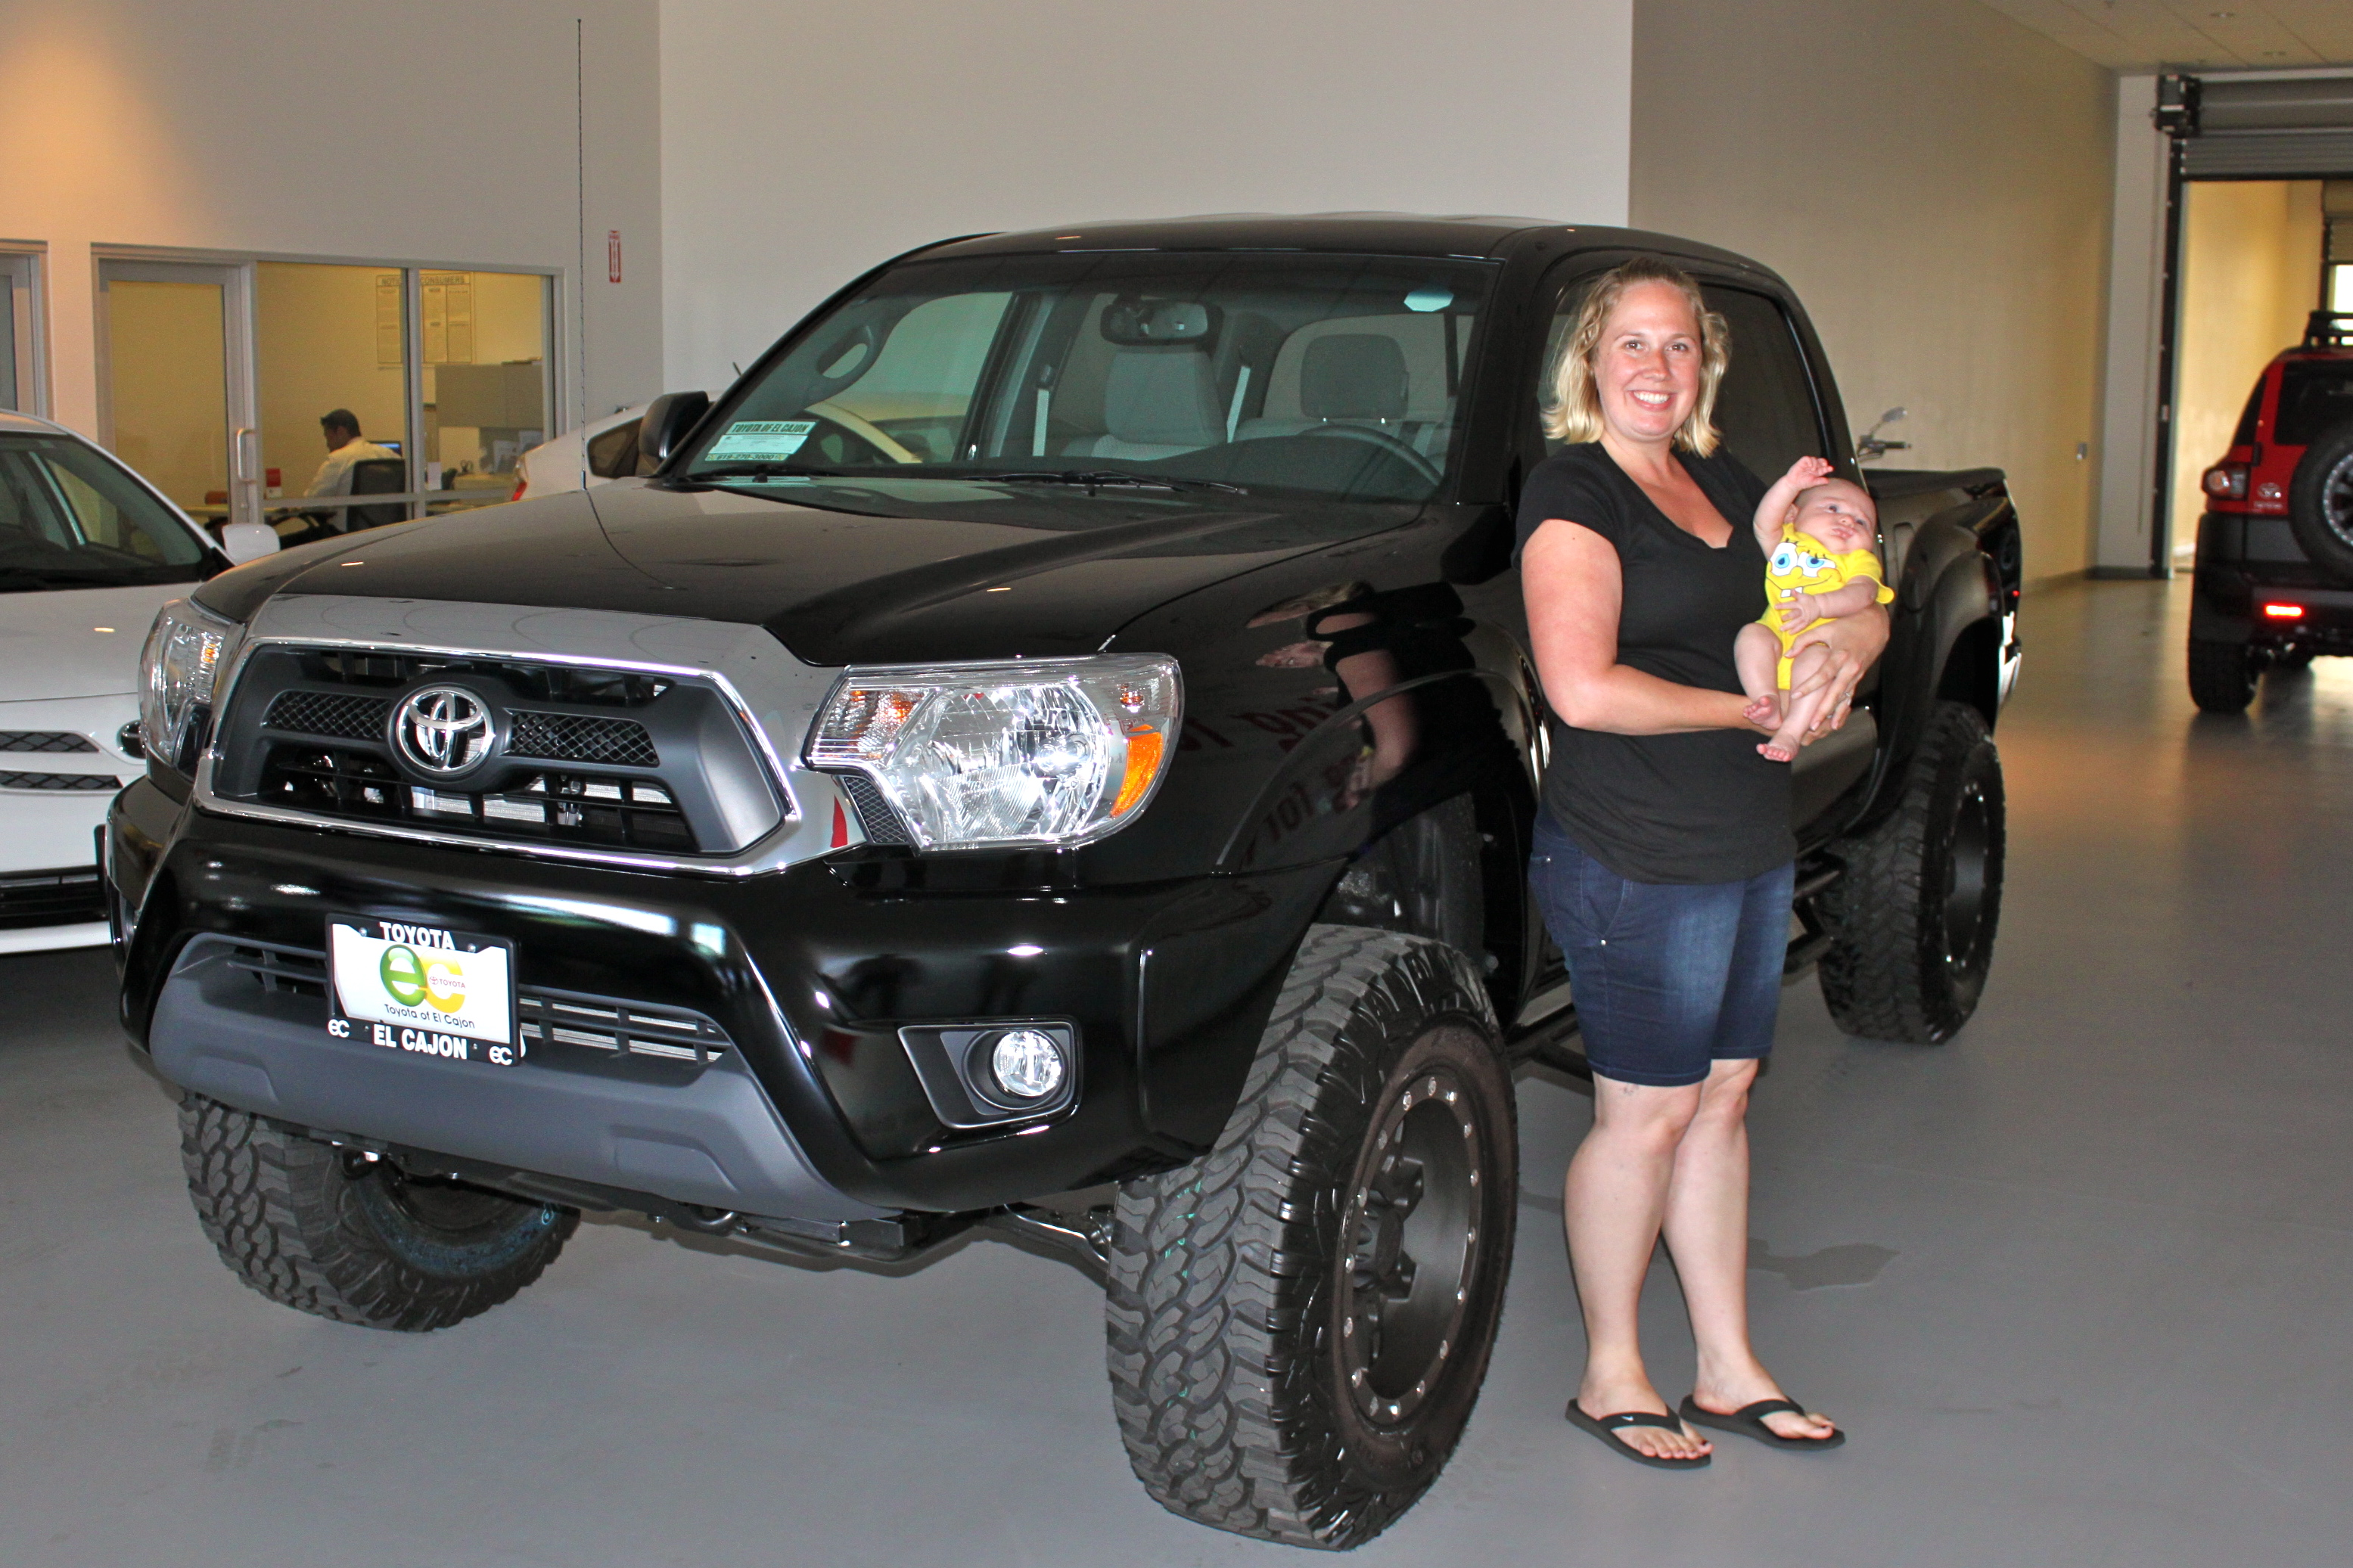 Jolene, Her Baby and a Lifted Truck | Toyota of El Cajon